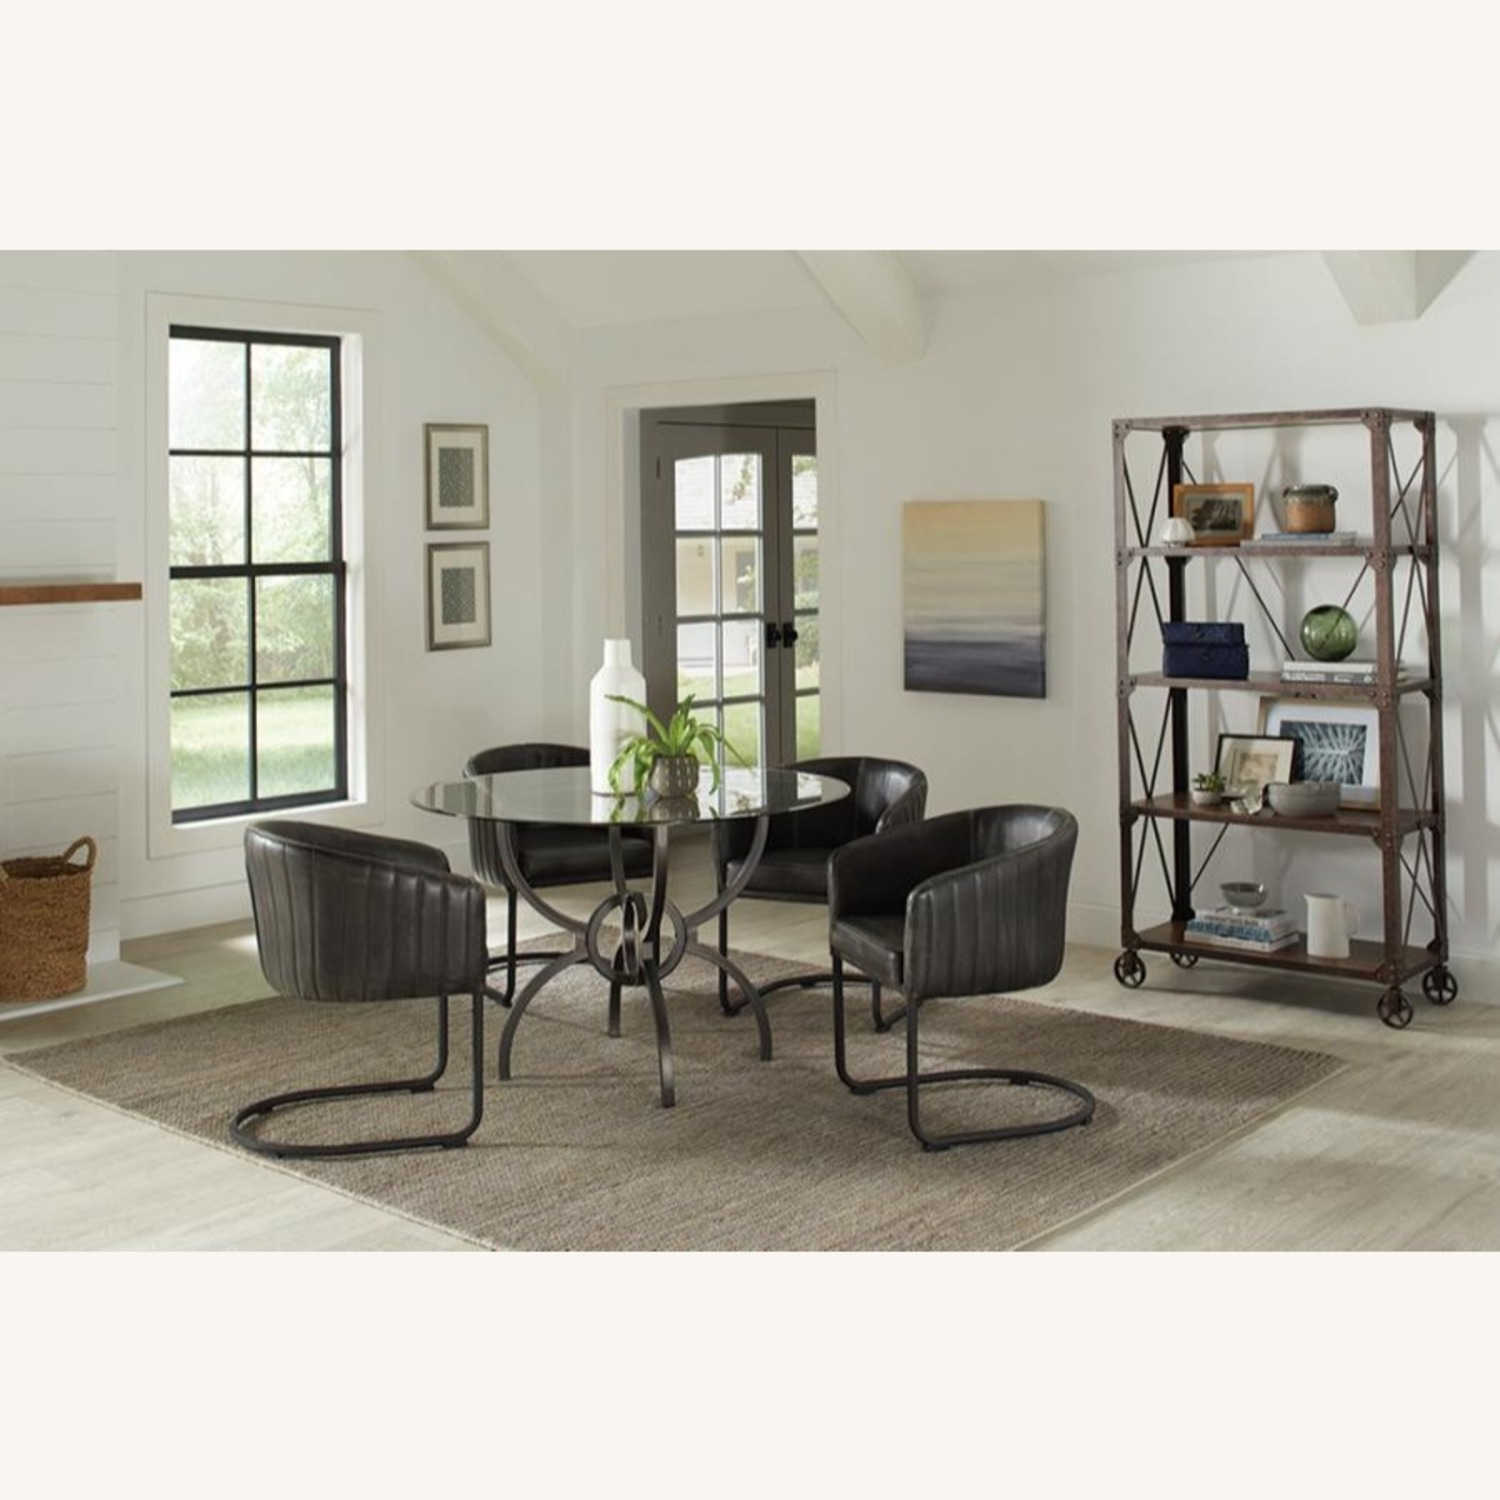 Dining Table In Gunmetal Base W/ Clear Glass Top - image-6